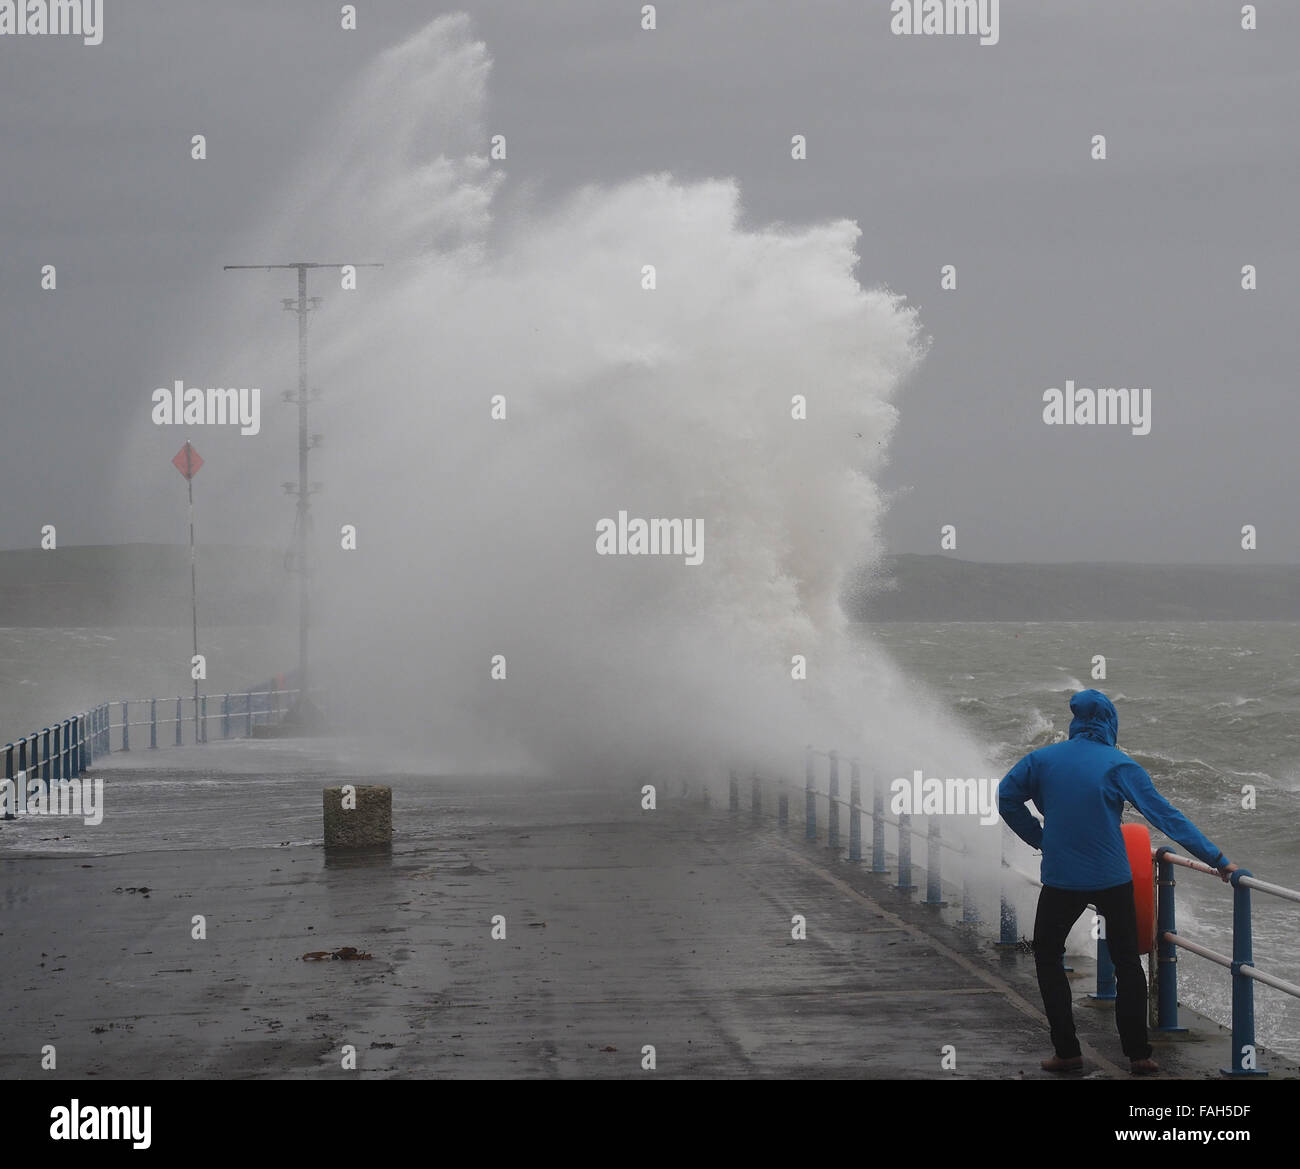 Dorset, UK. 30th Dec, 2015. Taking risk as this wave watcher at The Stone Pier in Weymouth Dorset was getting close Stock Photo